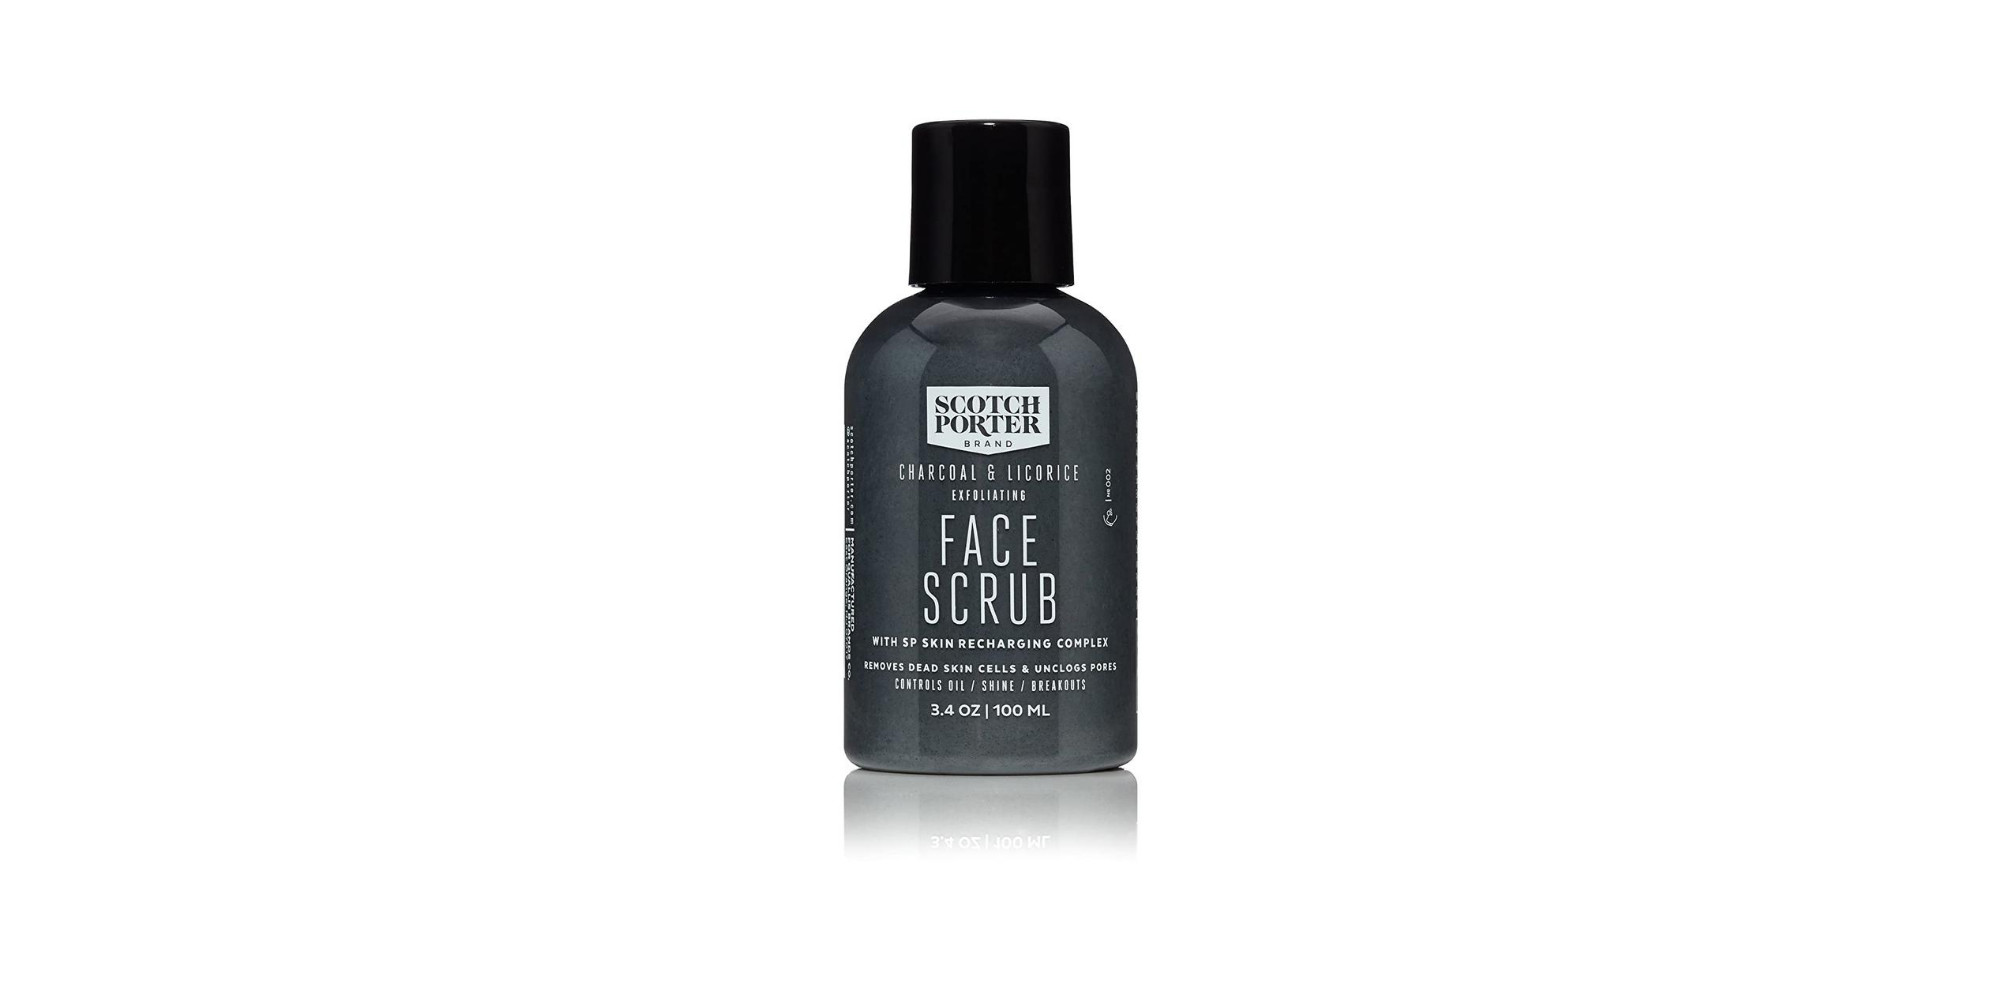 Scotch Porter Charcoal and Licorice Exfoliating Men's Face Scrub